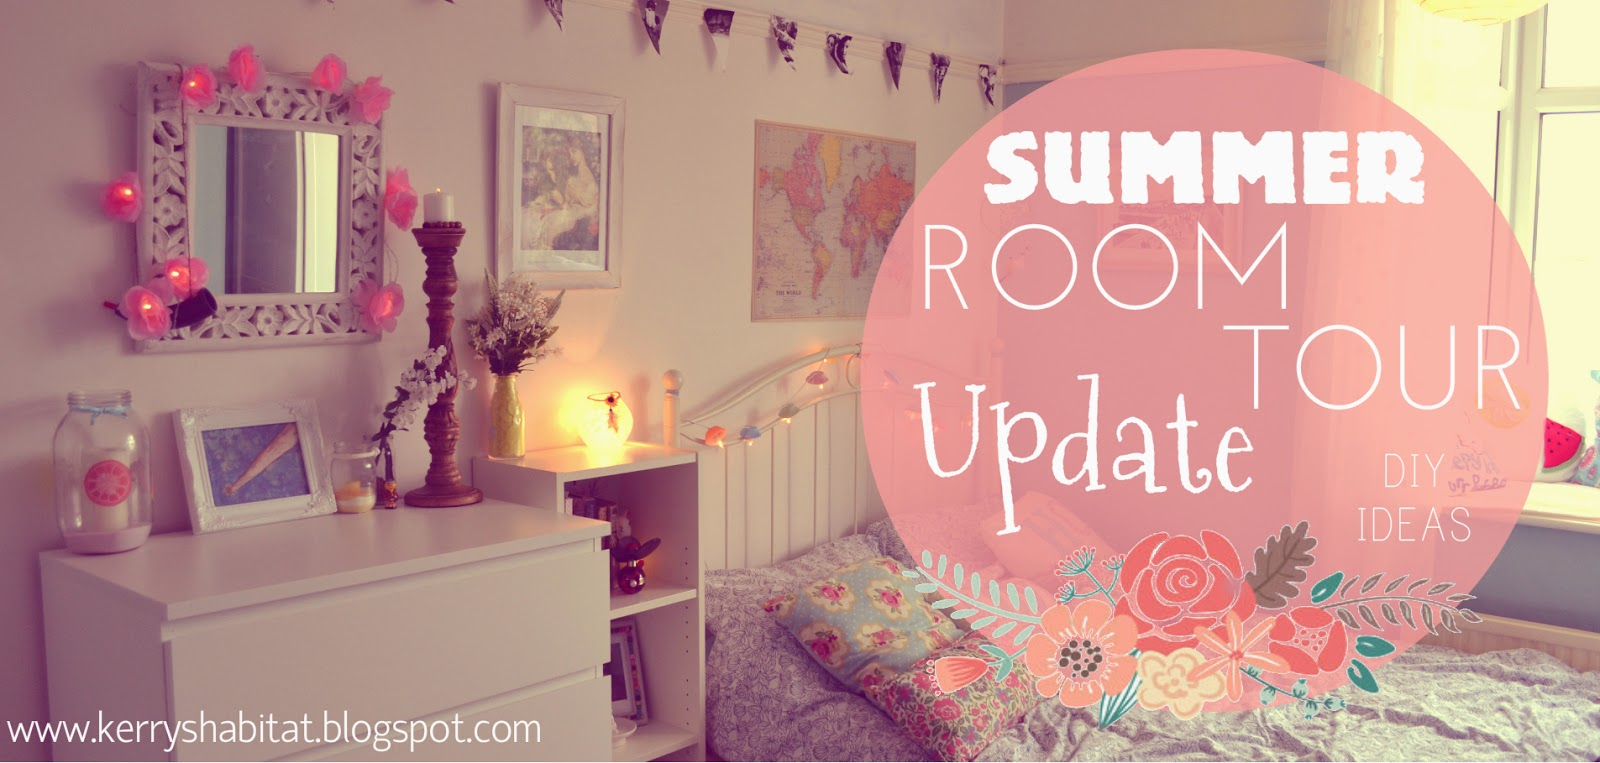 Kerry 39 s habitat summer room tour update geeky girly for Girly room decoration